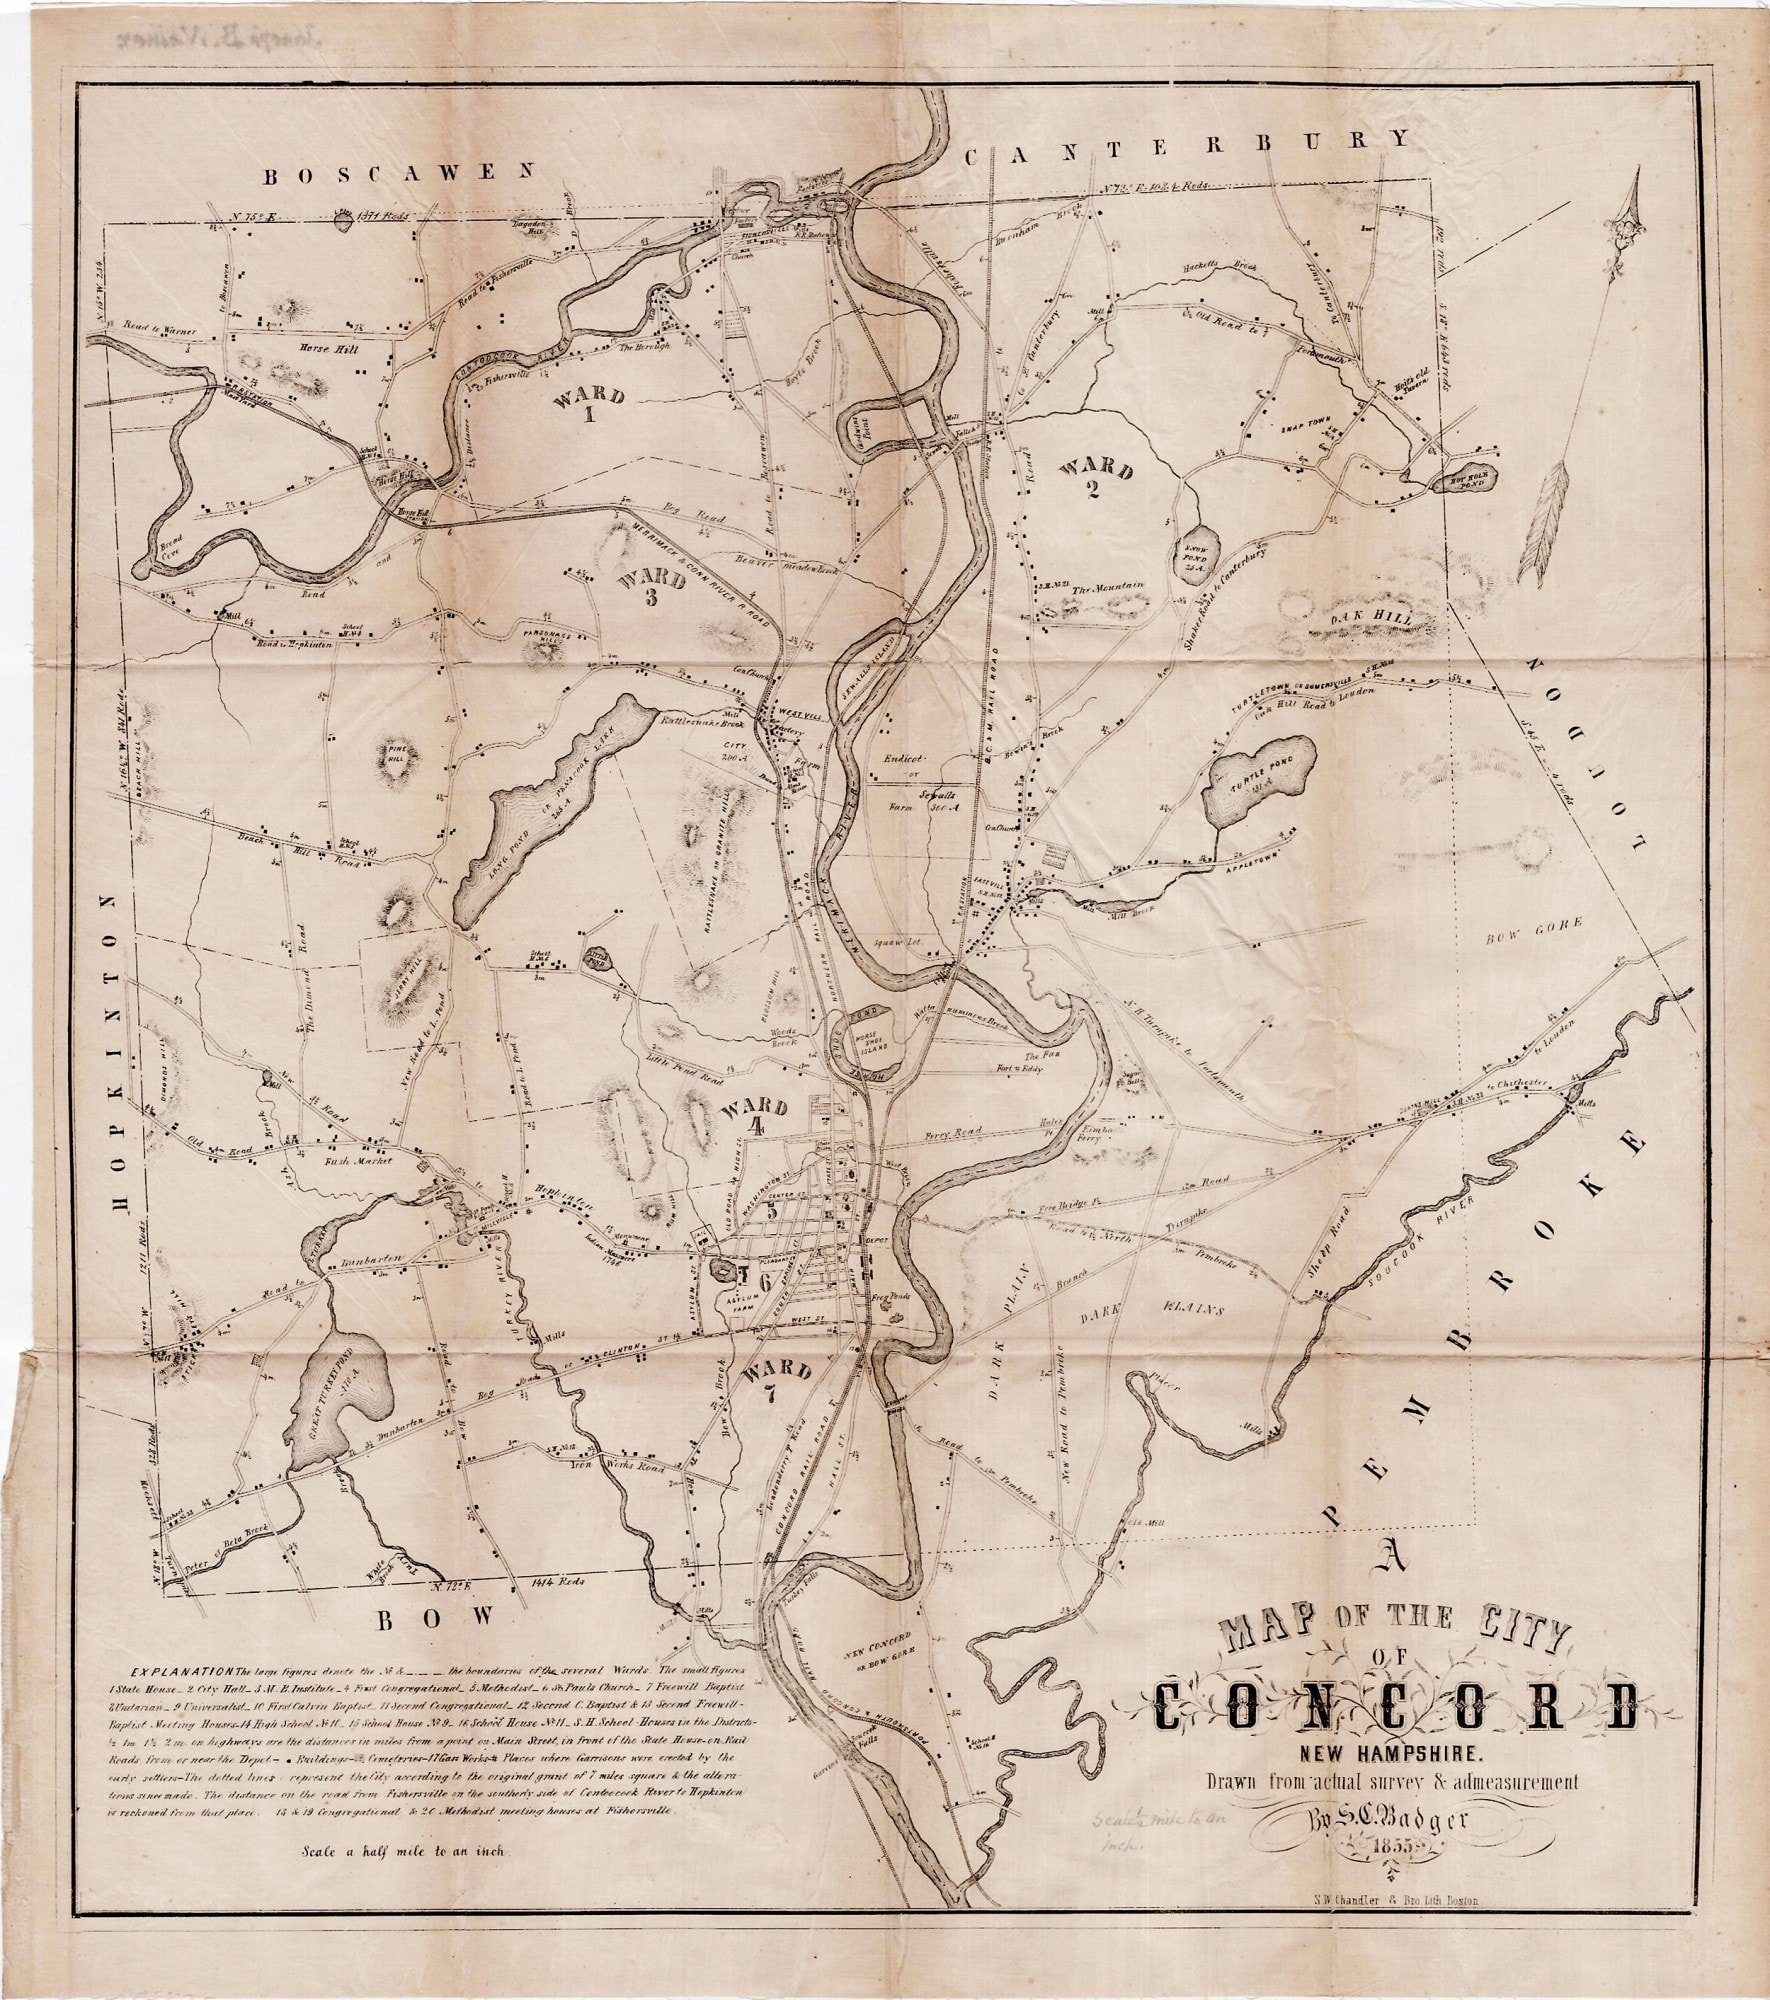 Early map of Concord, New Hampshire - Rare & Antique Maps